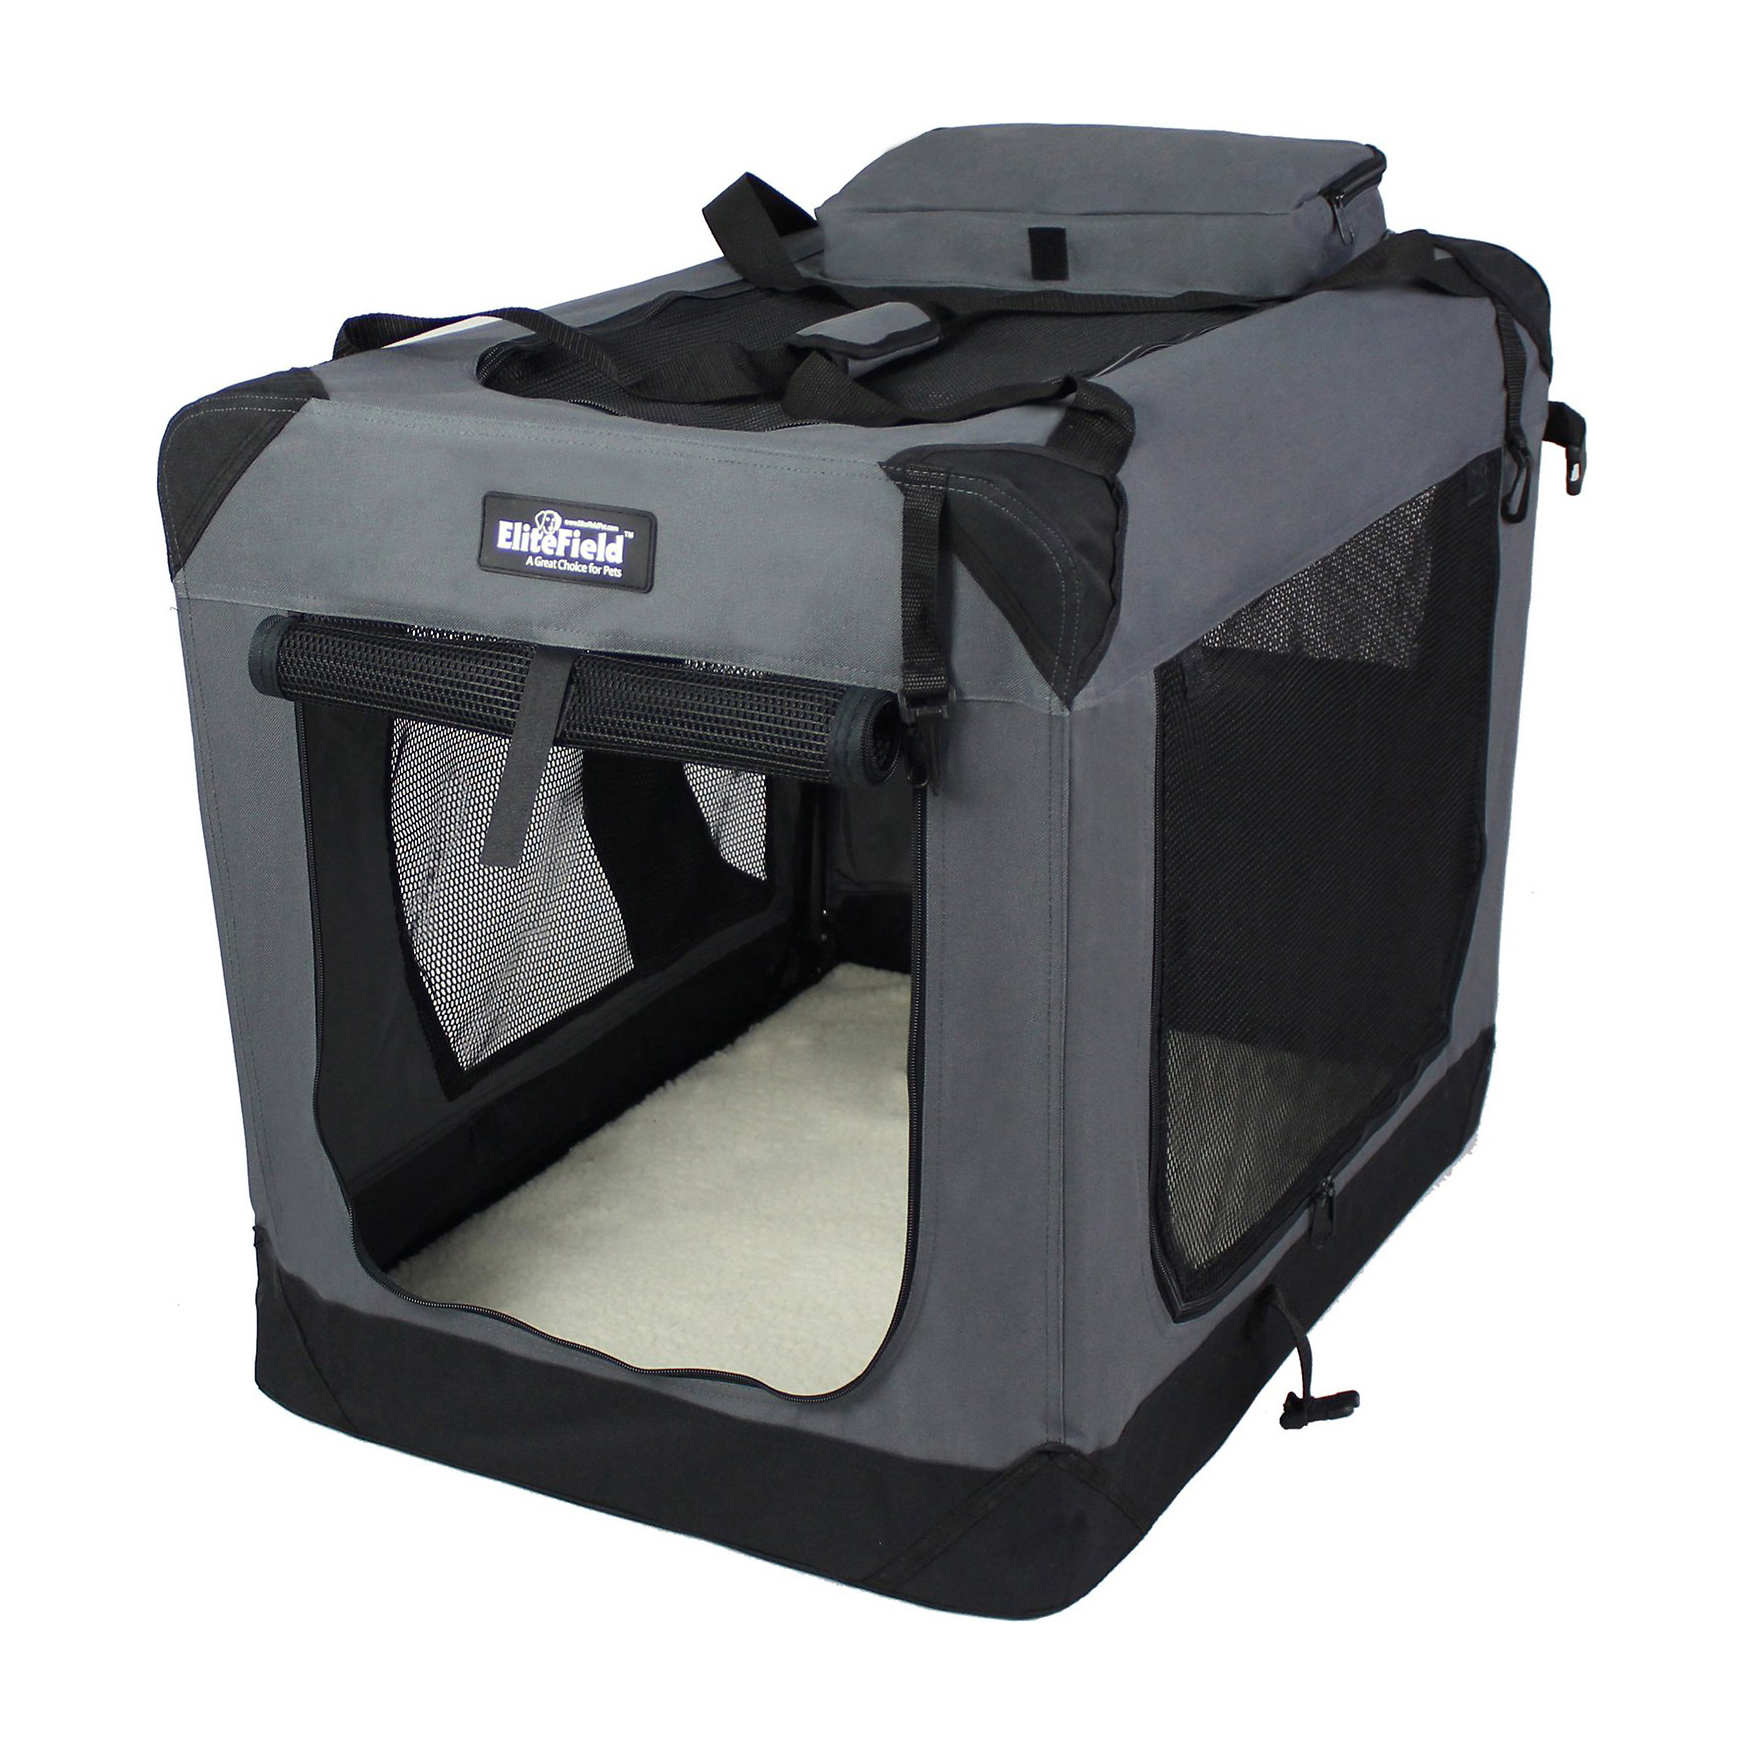 elitefield-3-door-collapsible-soft-sided-dog-crate